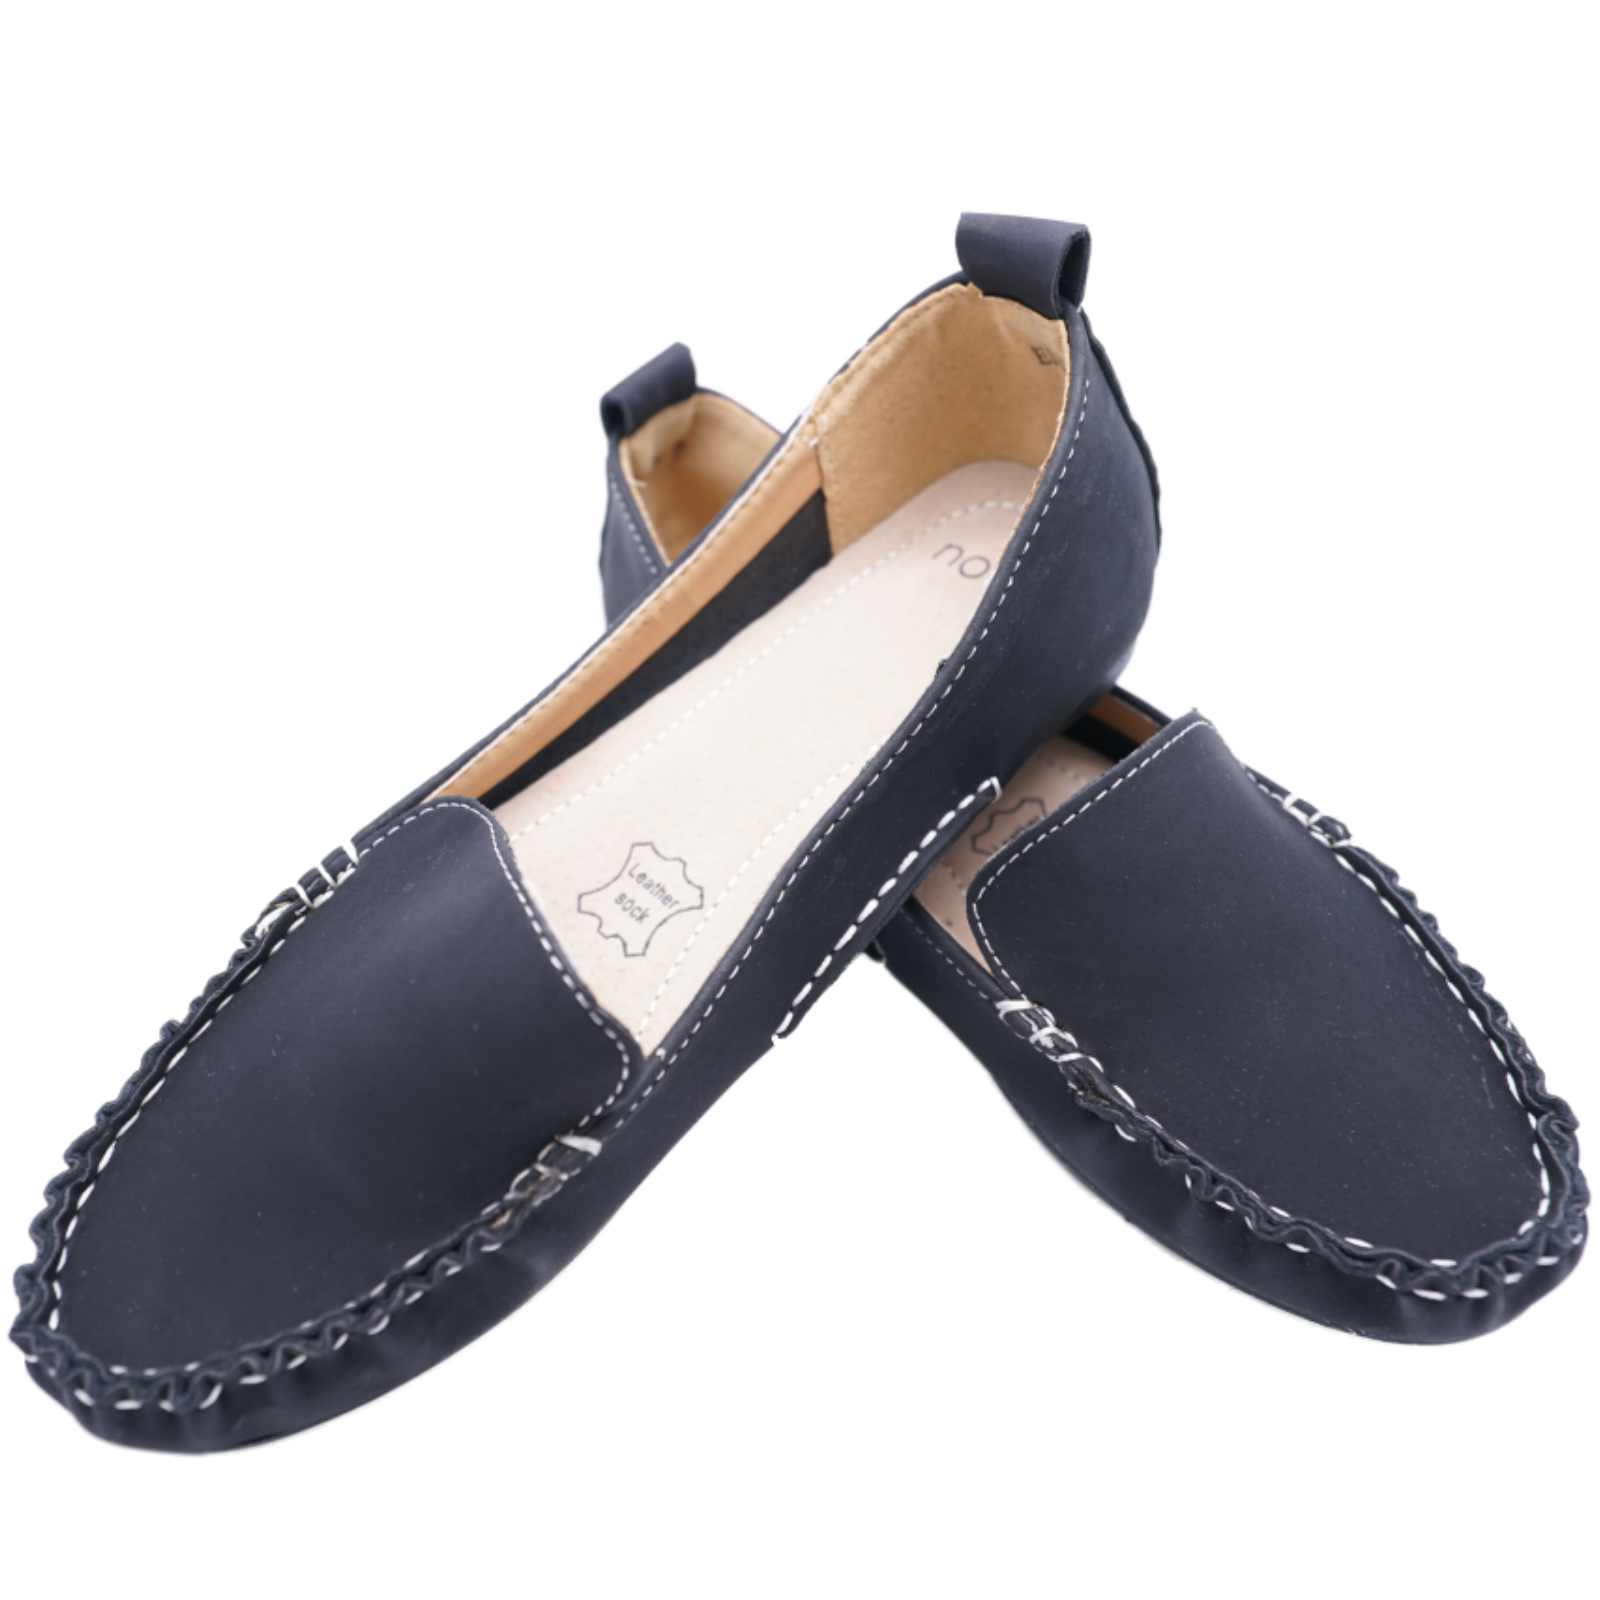 black slip on leather work moccasin casual comfort